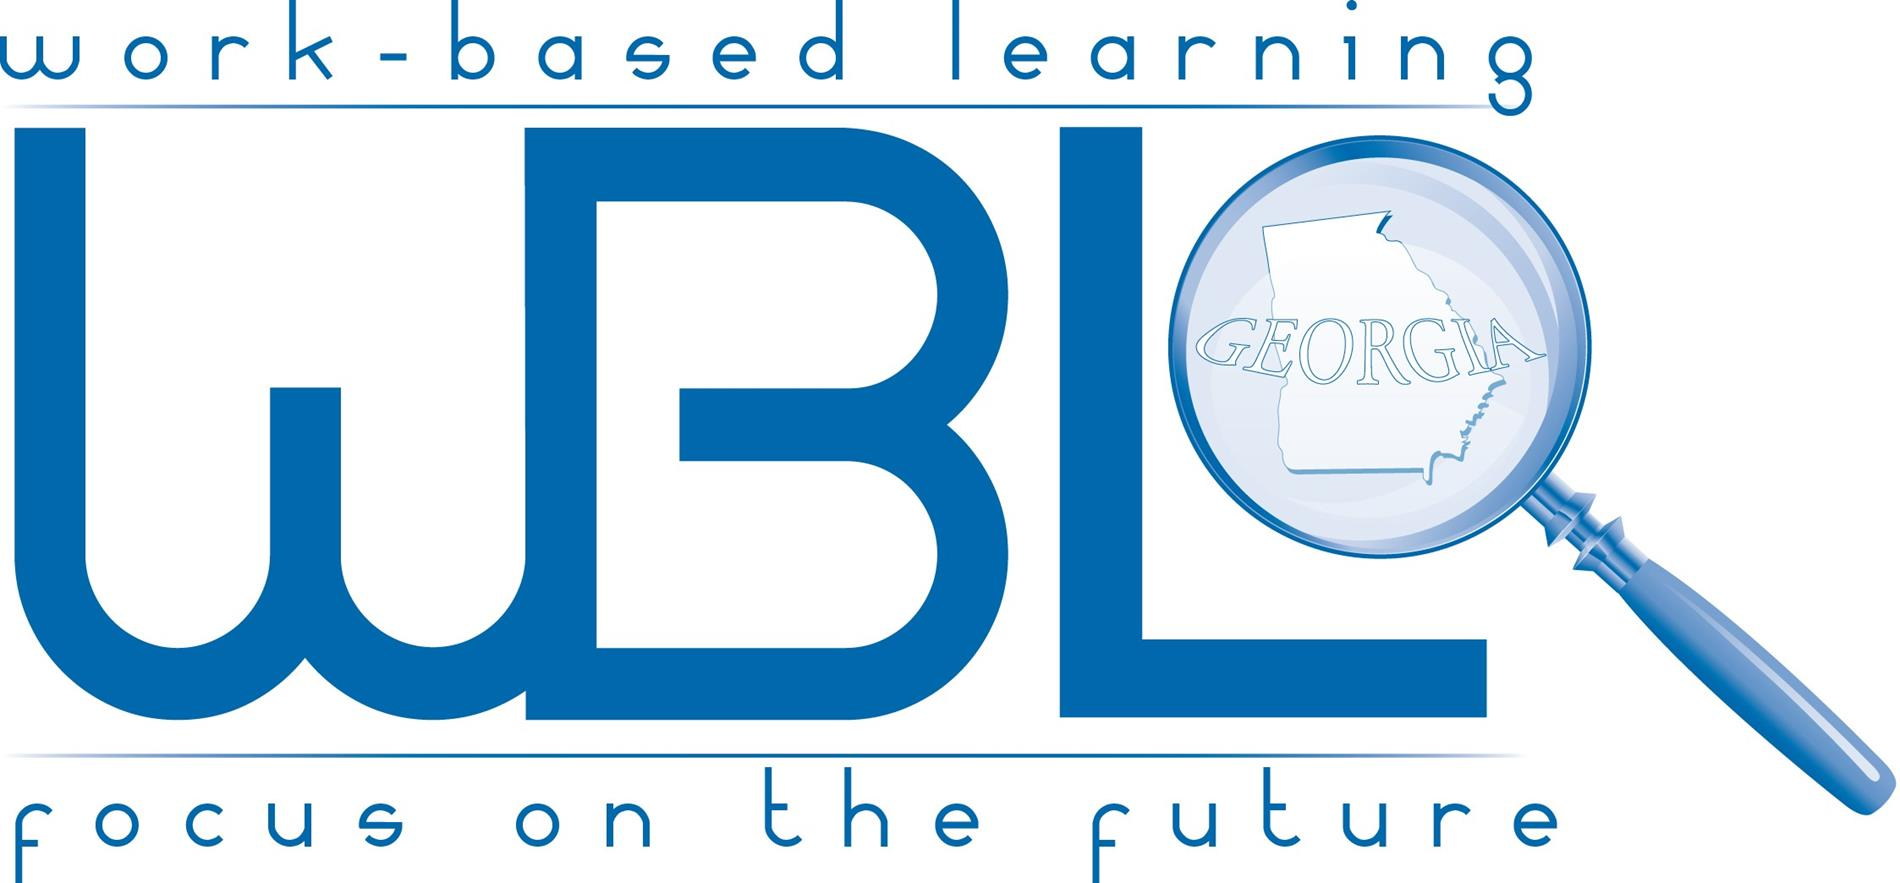 WBL Focus on the future